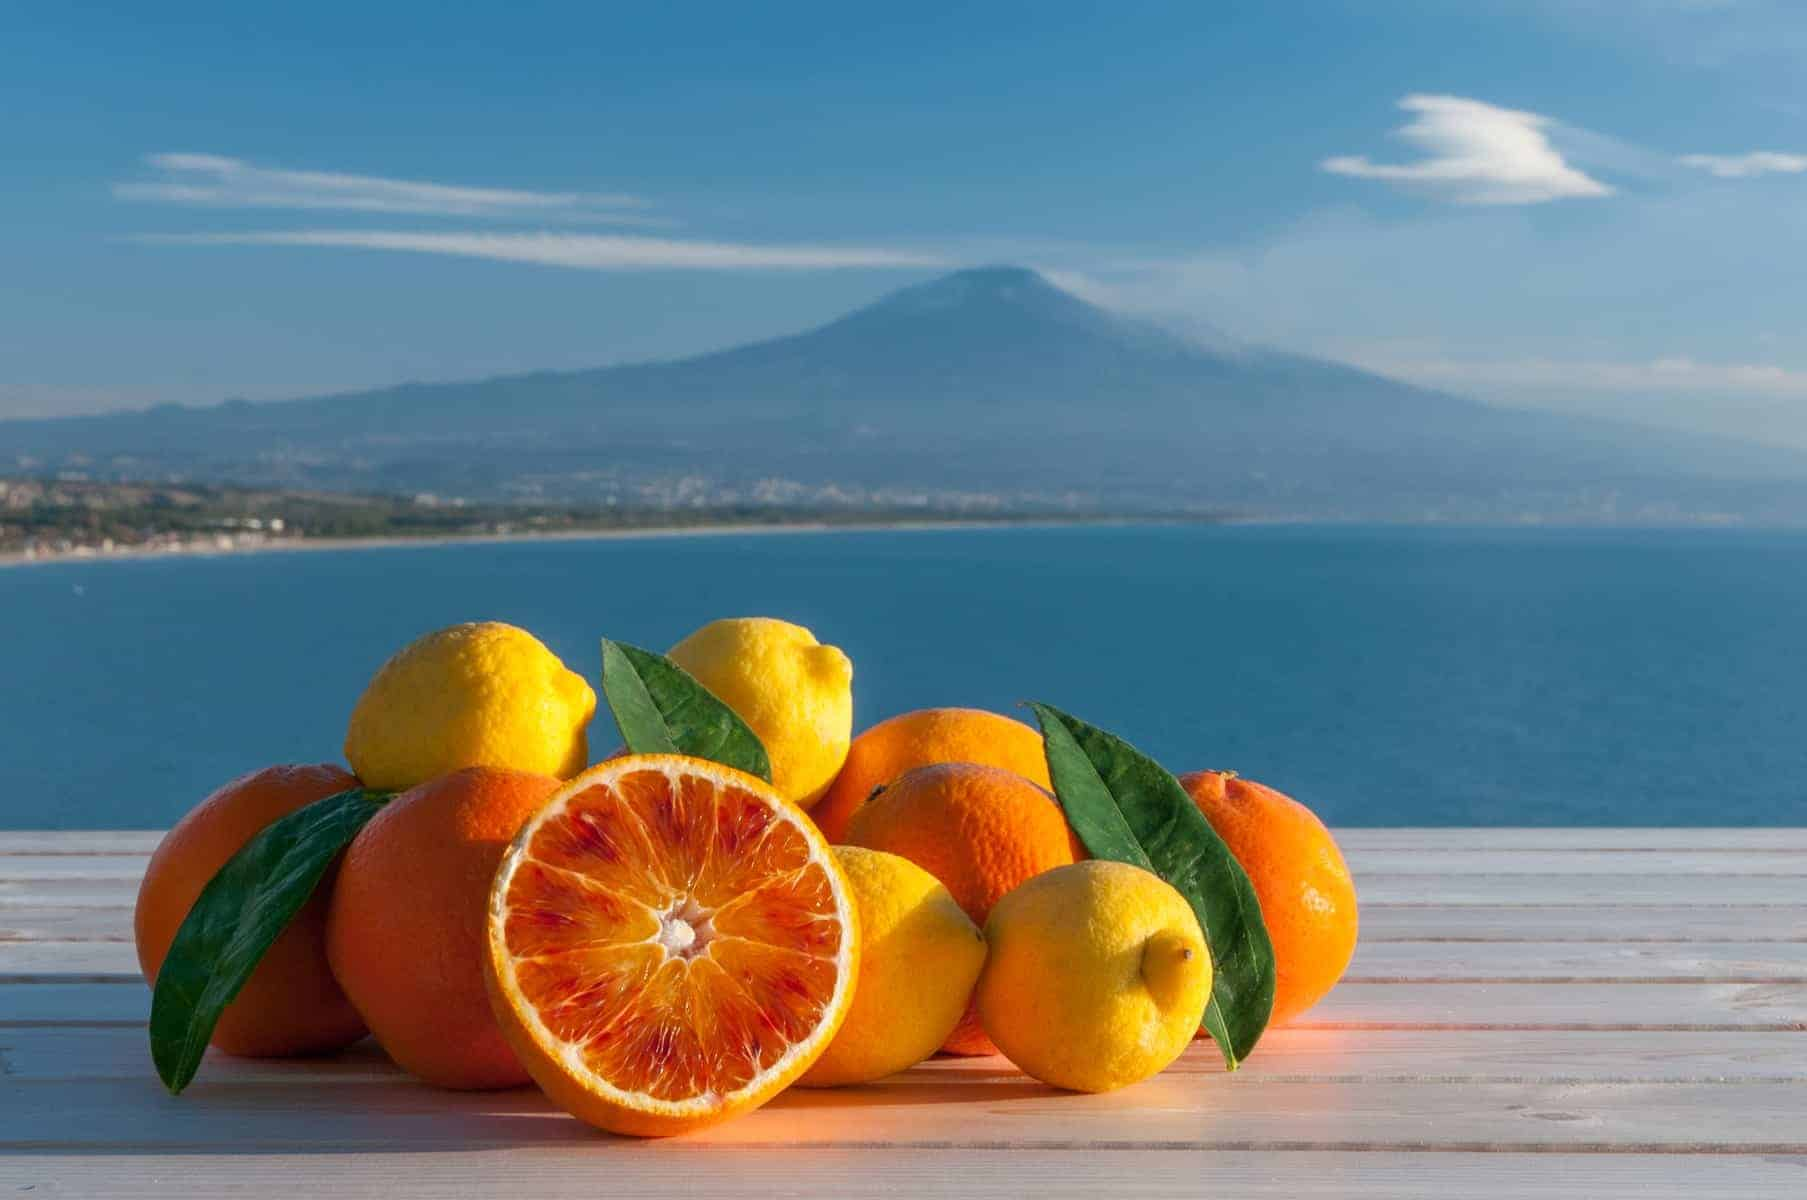 Oranges and lemons on a wooden table with blue sea, Mount Etna and clouds in the background